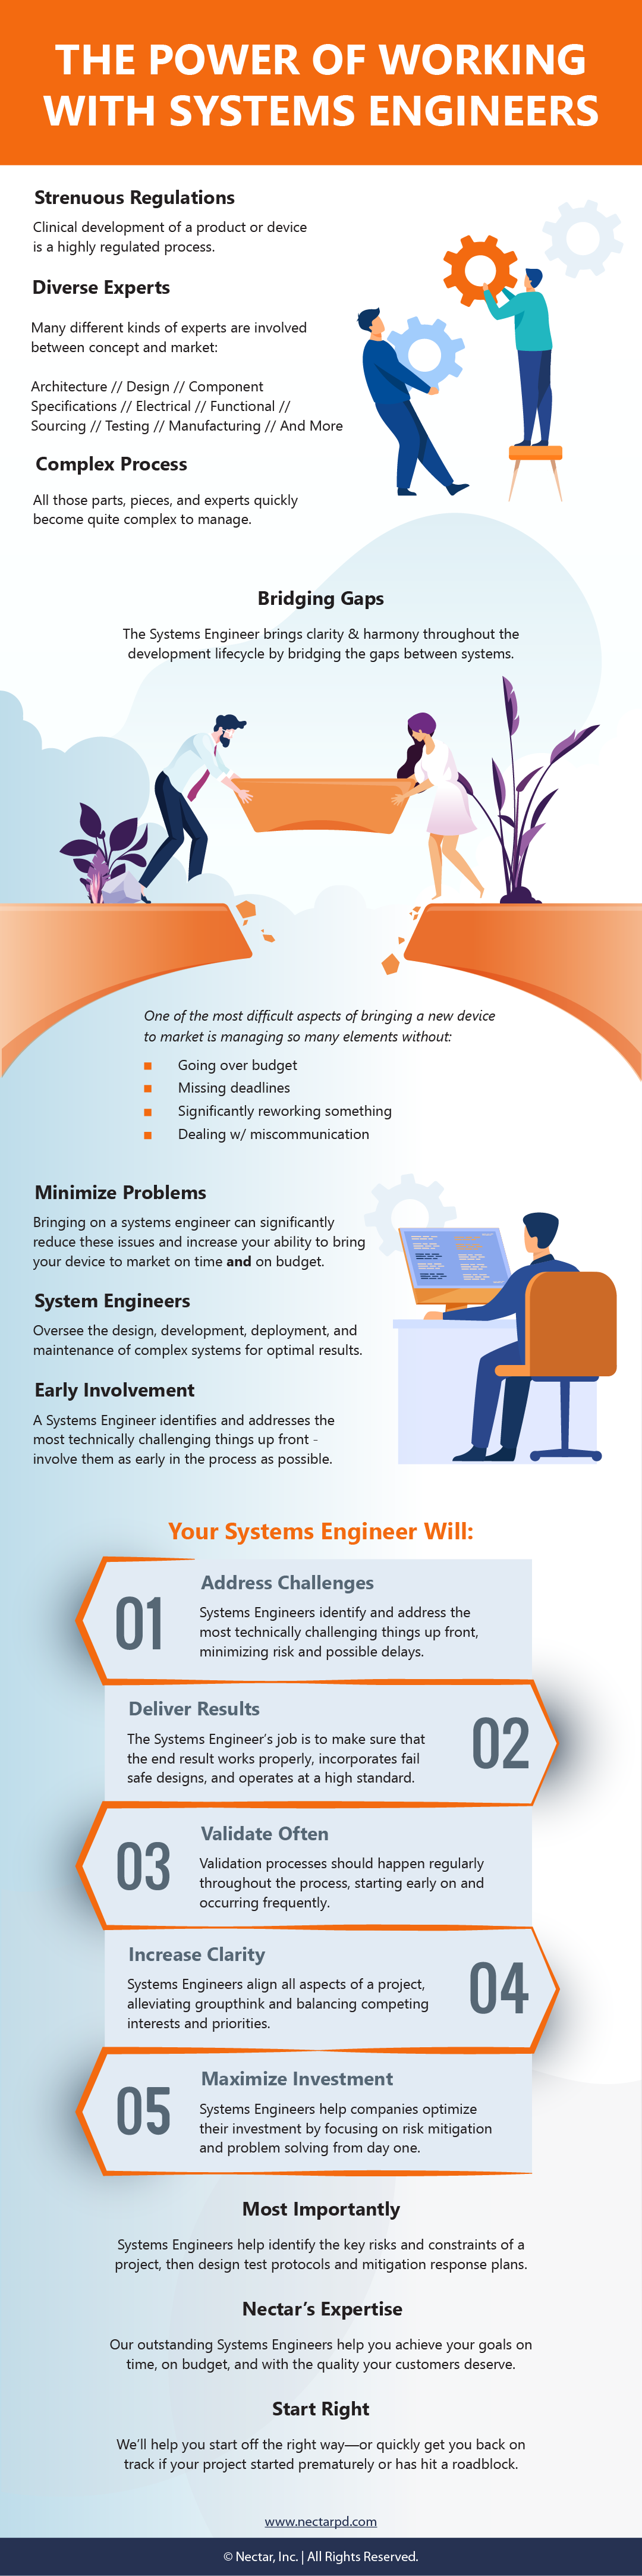 The power of working with System Engineers